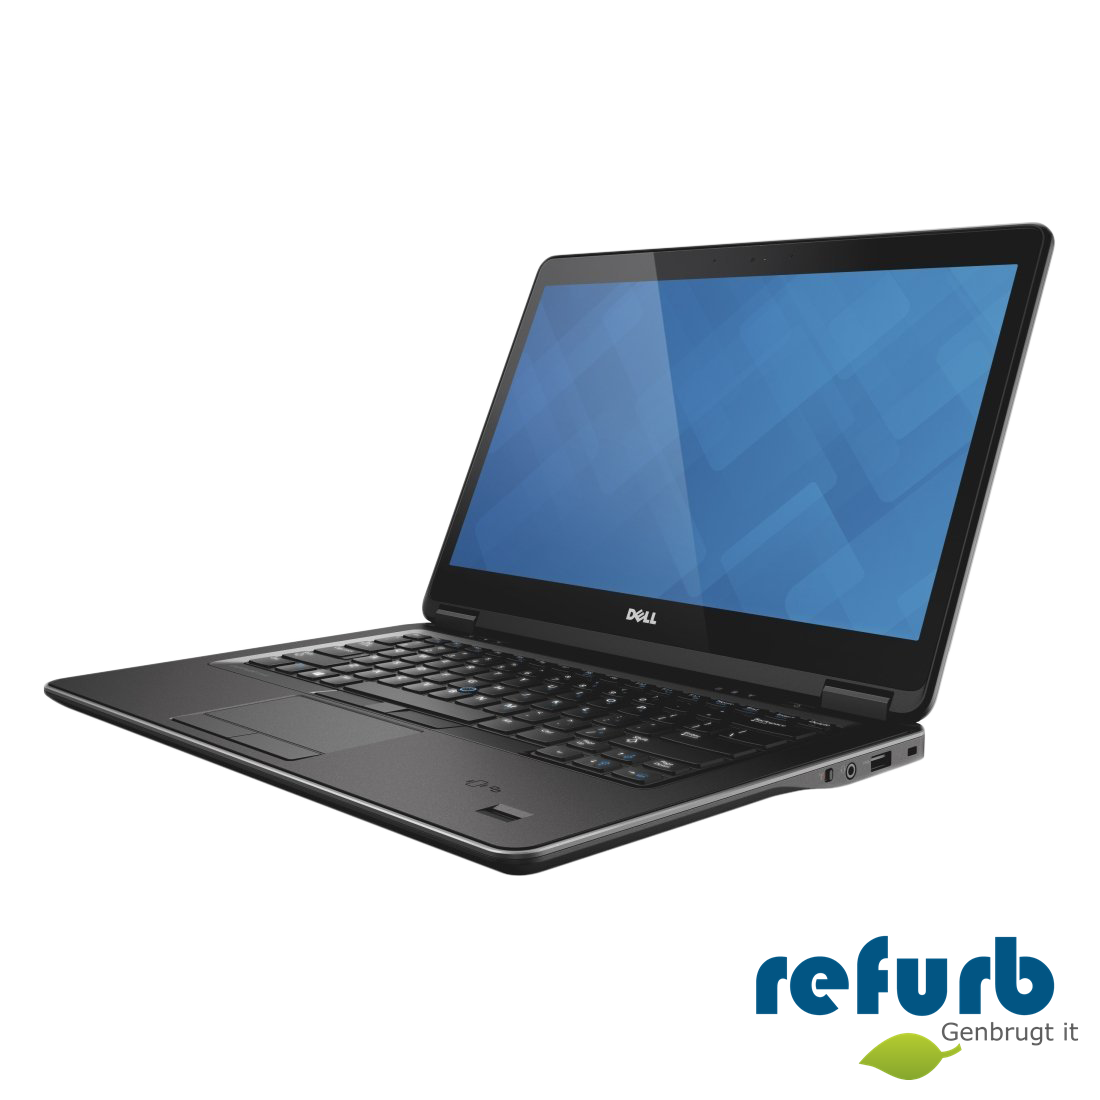 Dell – Dell latitude e7440 på refurb